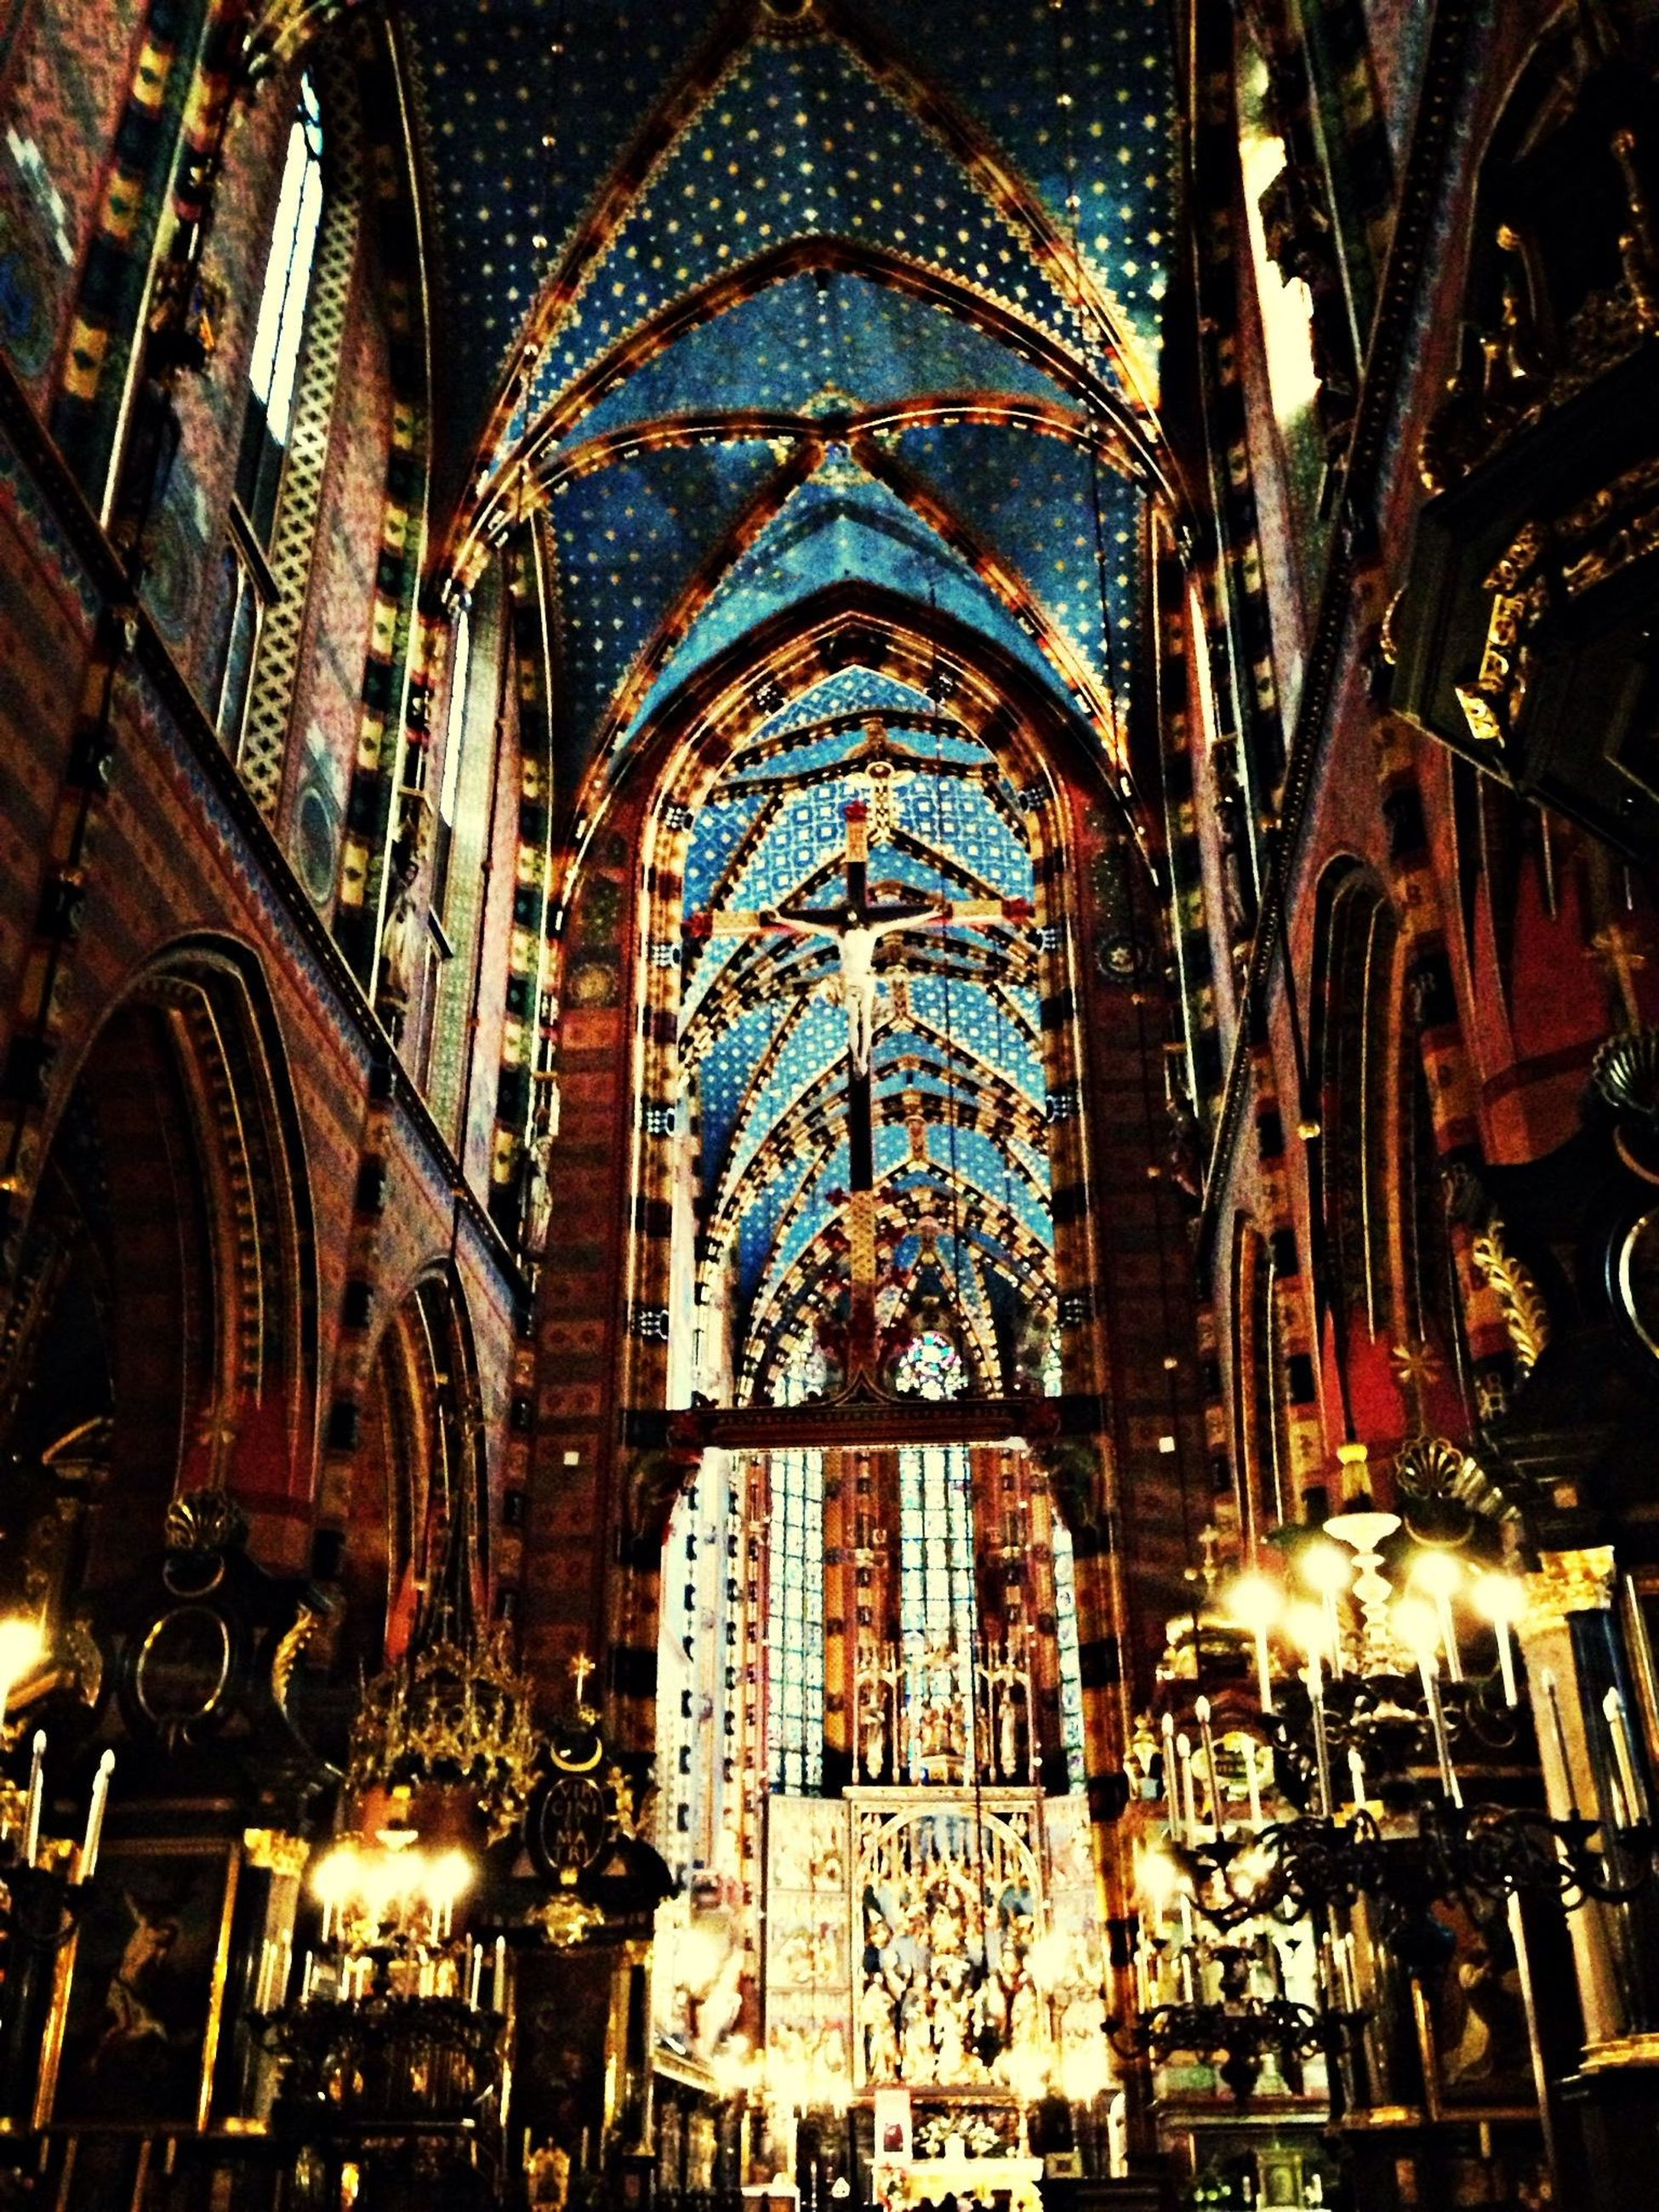 architecture, religion, place of worship, spirituality, built structure, church, building exterior, cathedral, arch, indoors, low angle view, illuminated, window, history, ornate, night, travel destinations, no people